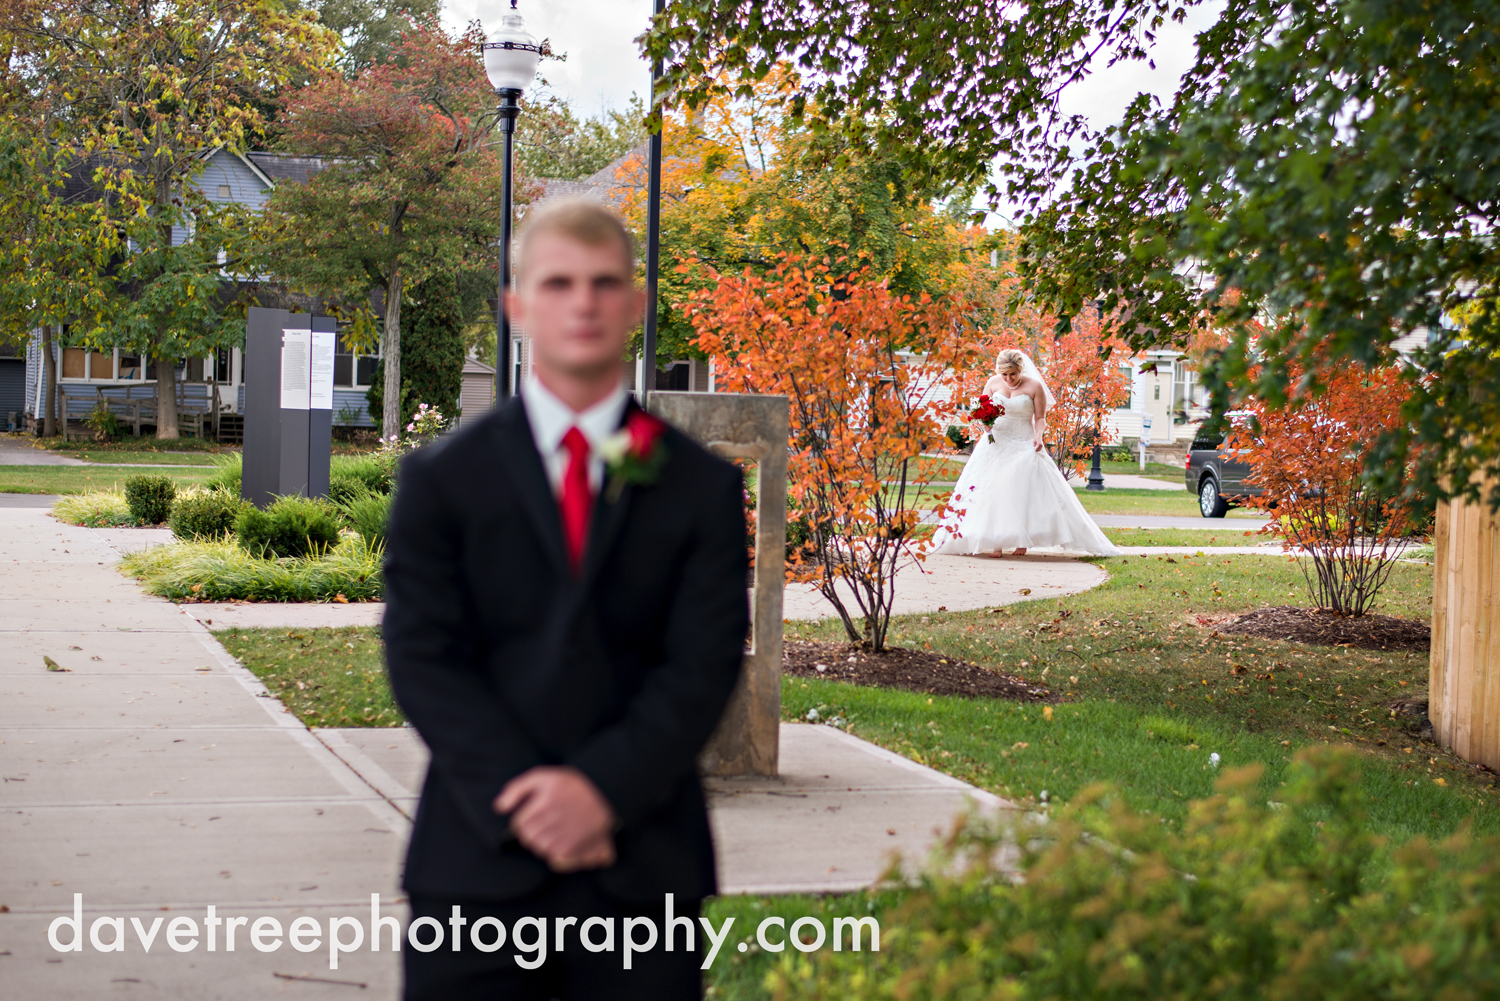 holland_wedding_photographer_78.jpg